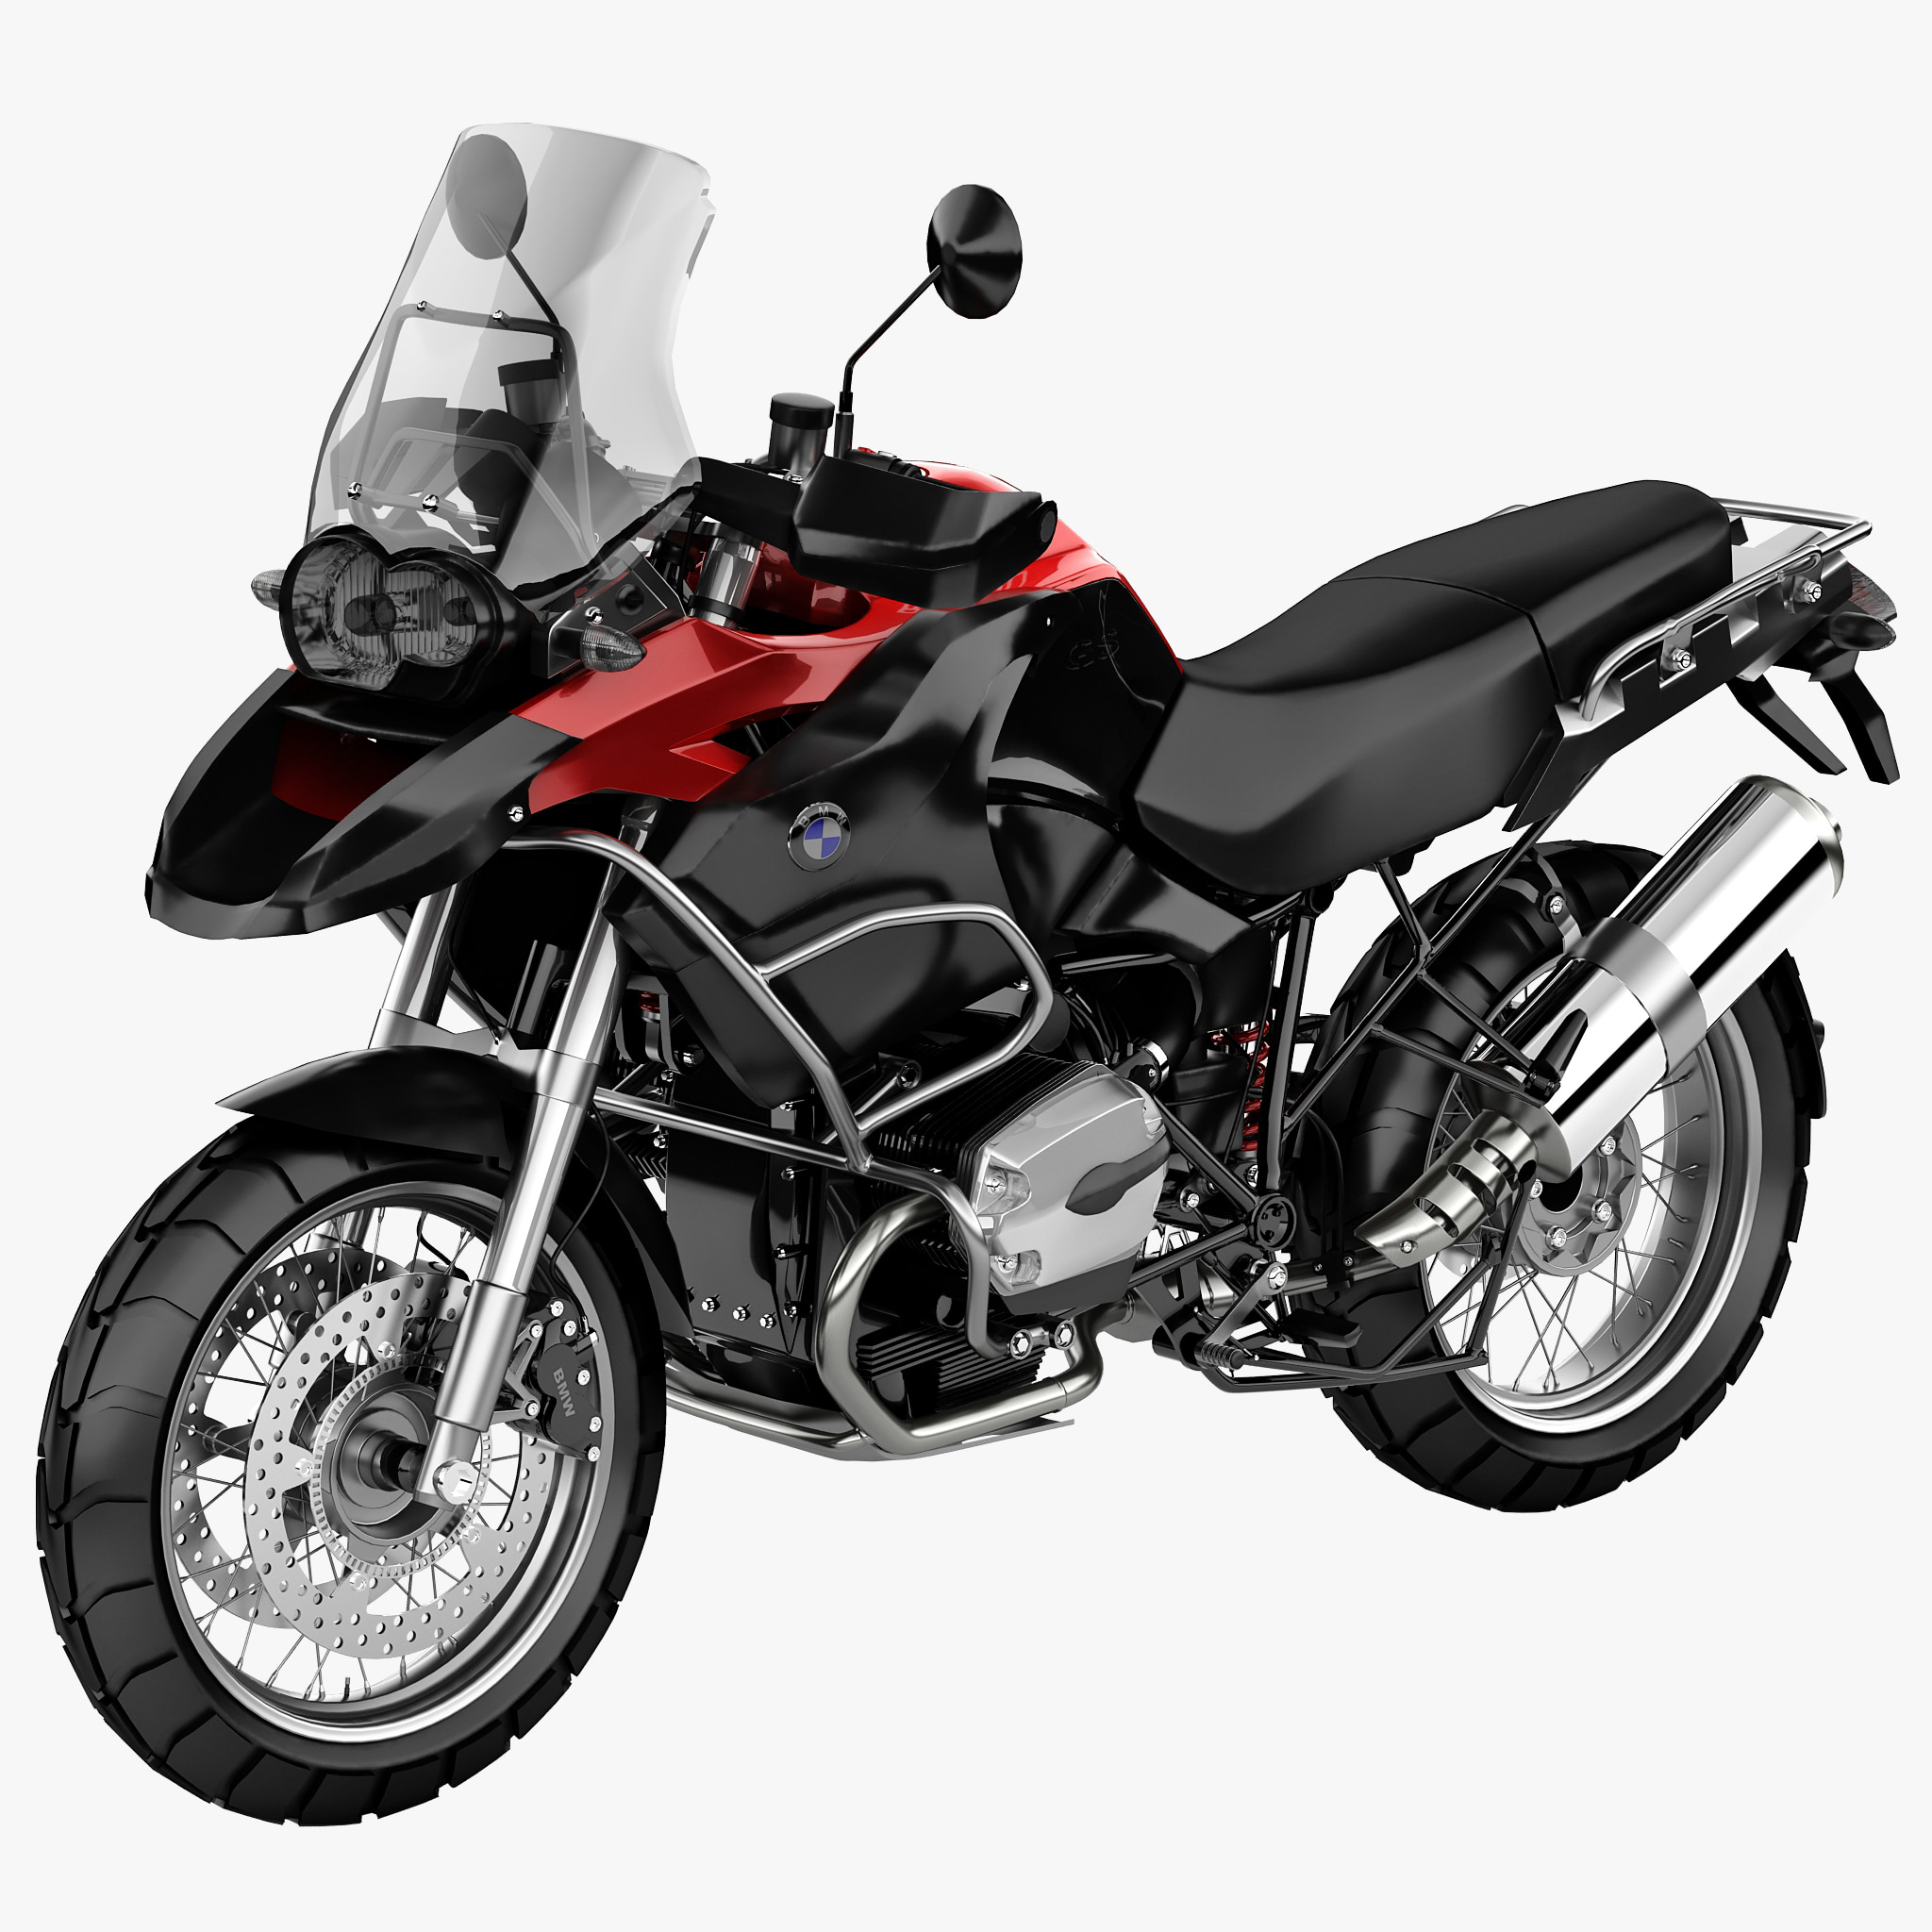 BMW Motorcycle R1200 GS 2012_1.jpg